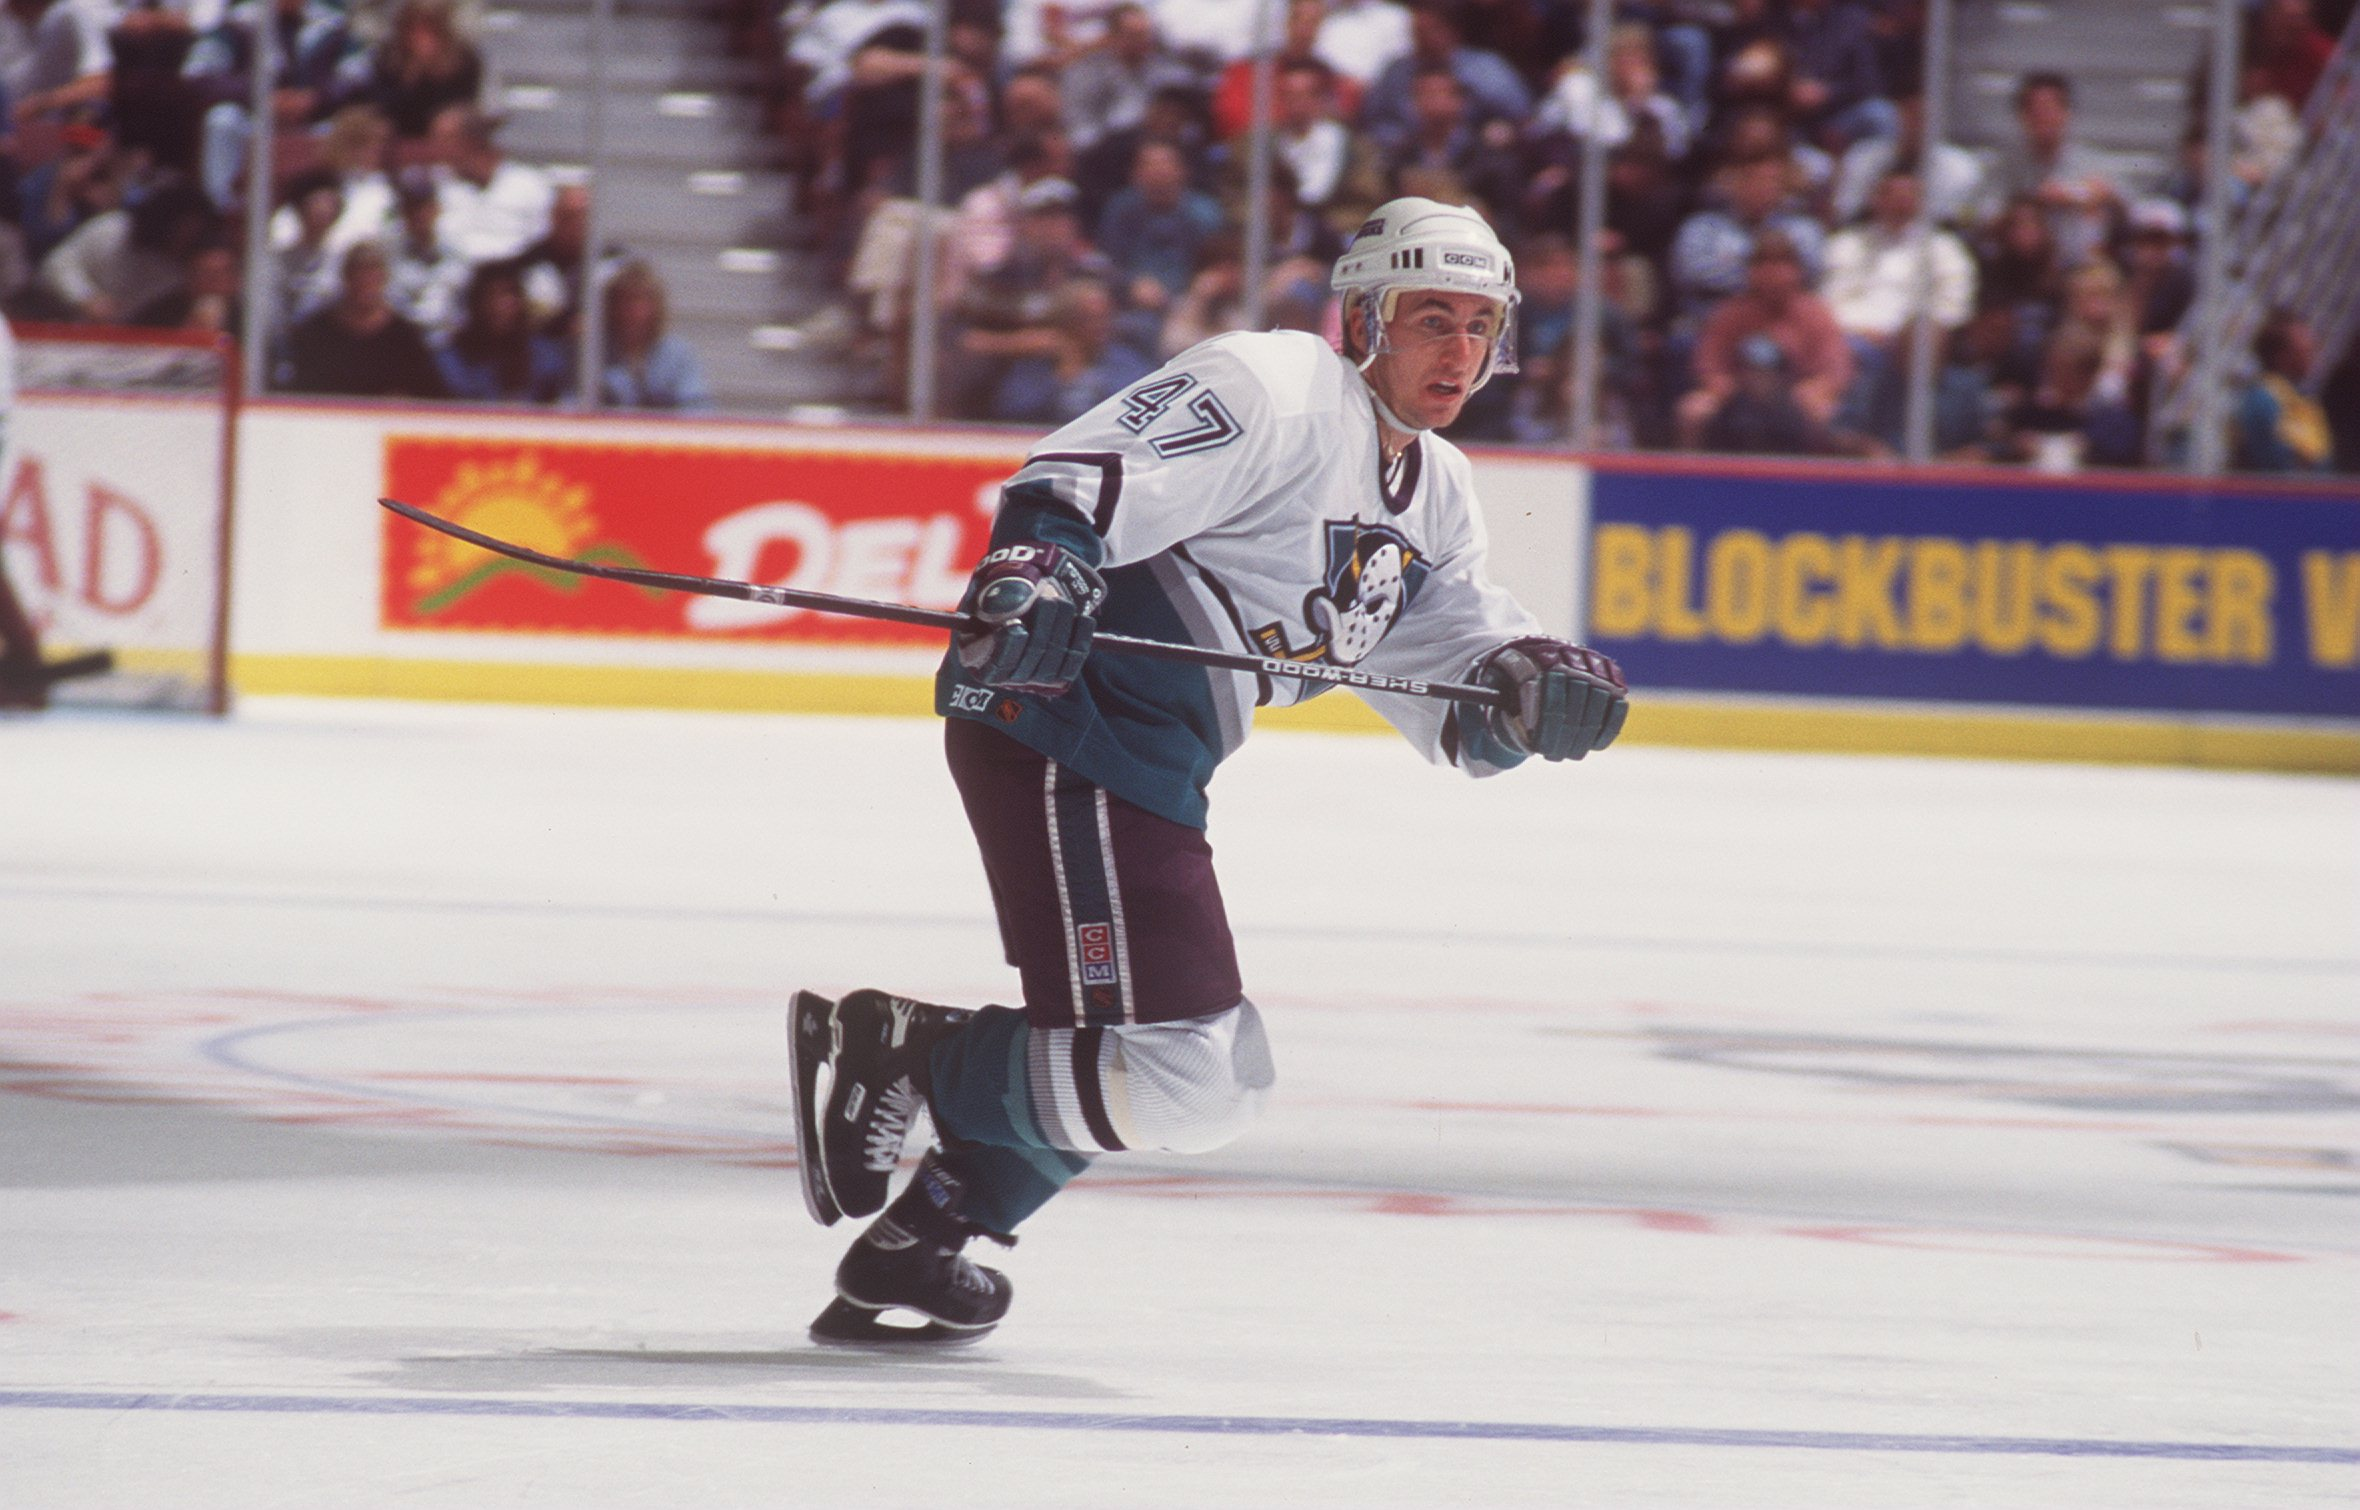 9 MAR 1995:  STEPHAN LEBEAU, CENTER FOR THE MIGHTY DUCKS OF ANAHEIM, IN ACTION DURING THEIR 4-4 TIE WITH THE DETROIT RED WINGS AT THE POND IN ANAHEIM, CALIFORNIA. Mandatory Credit: Glenn Cratty/ALLSPORT